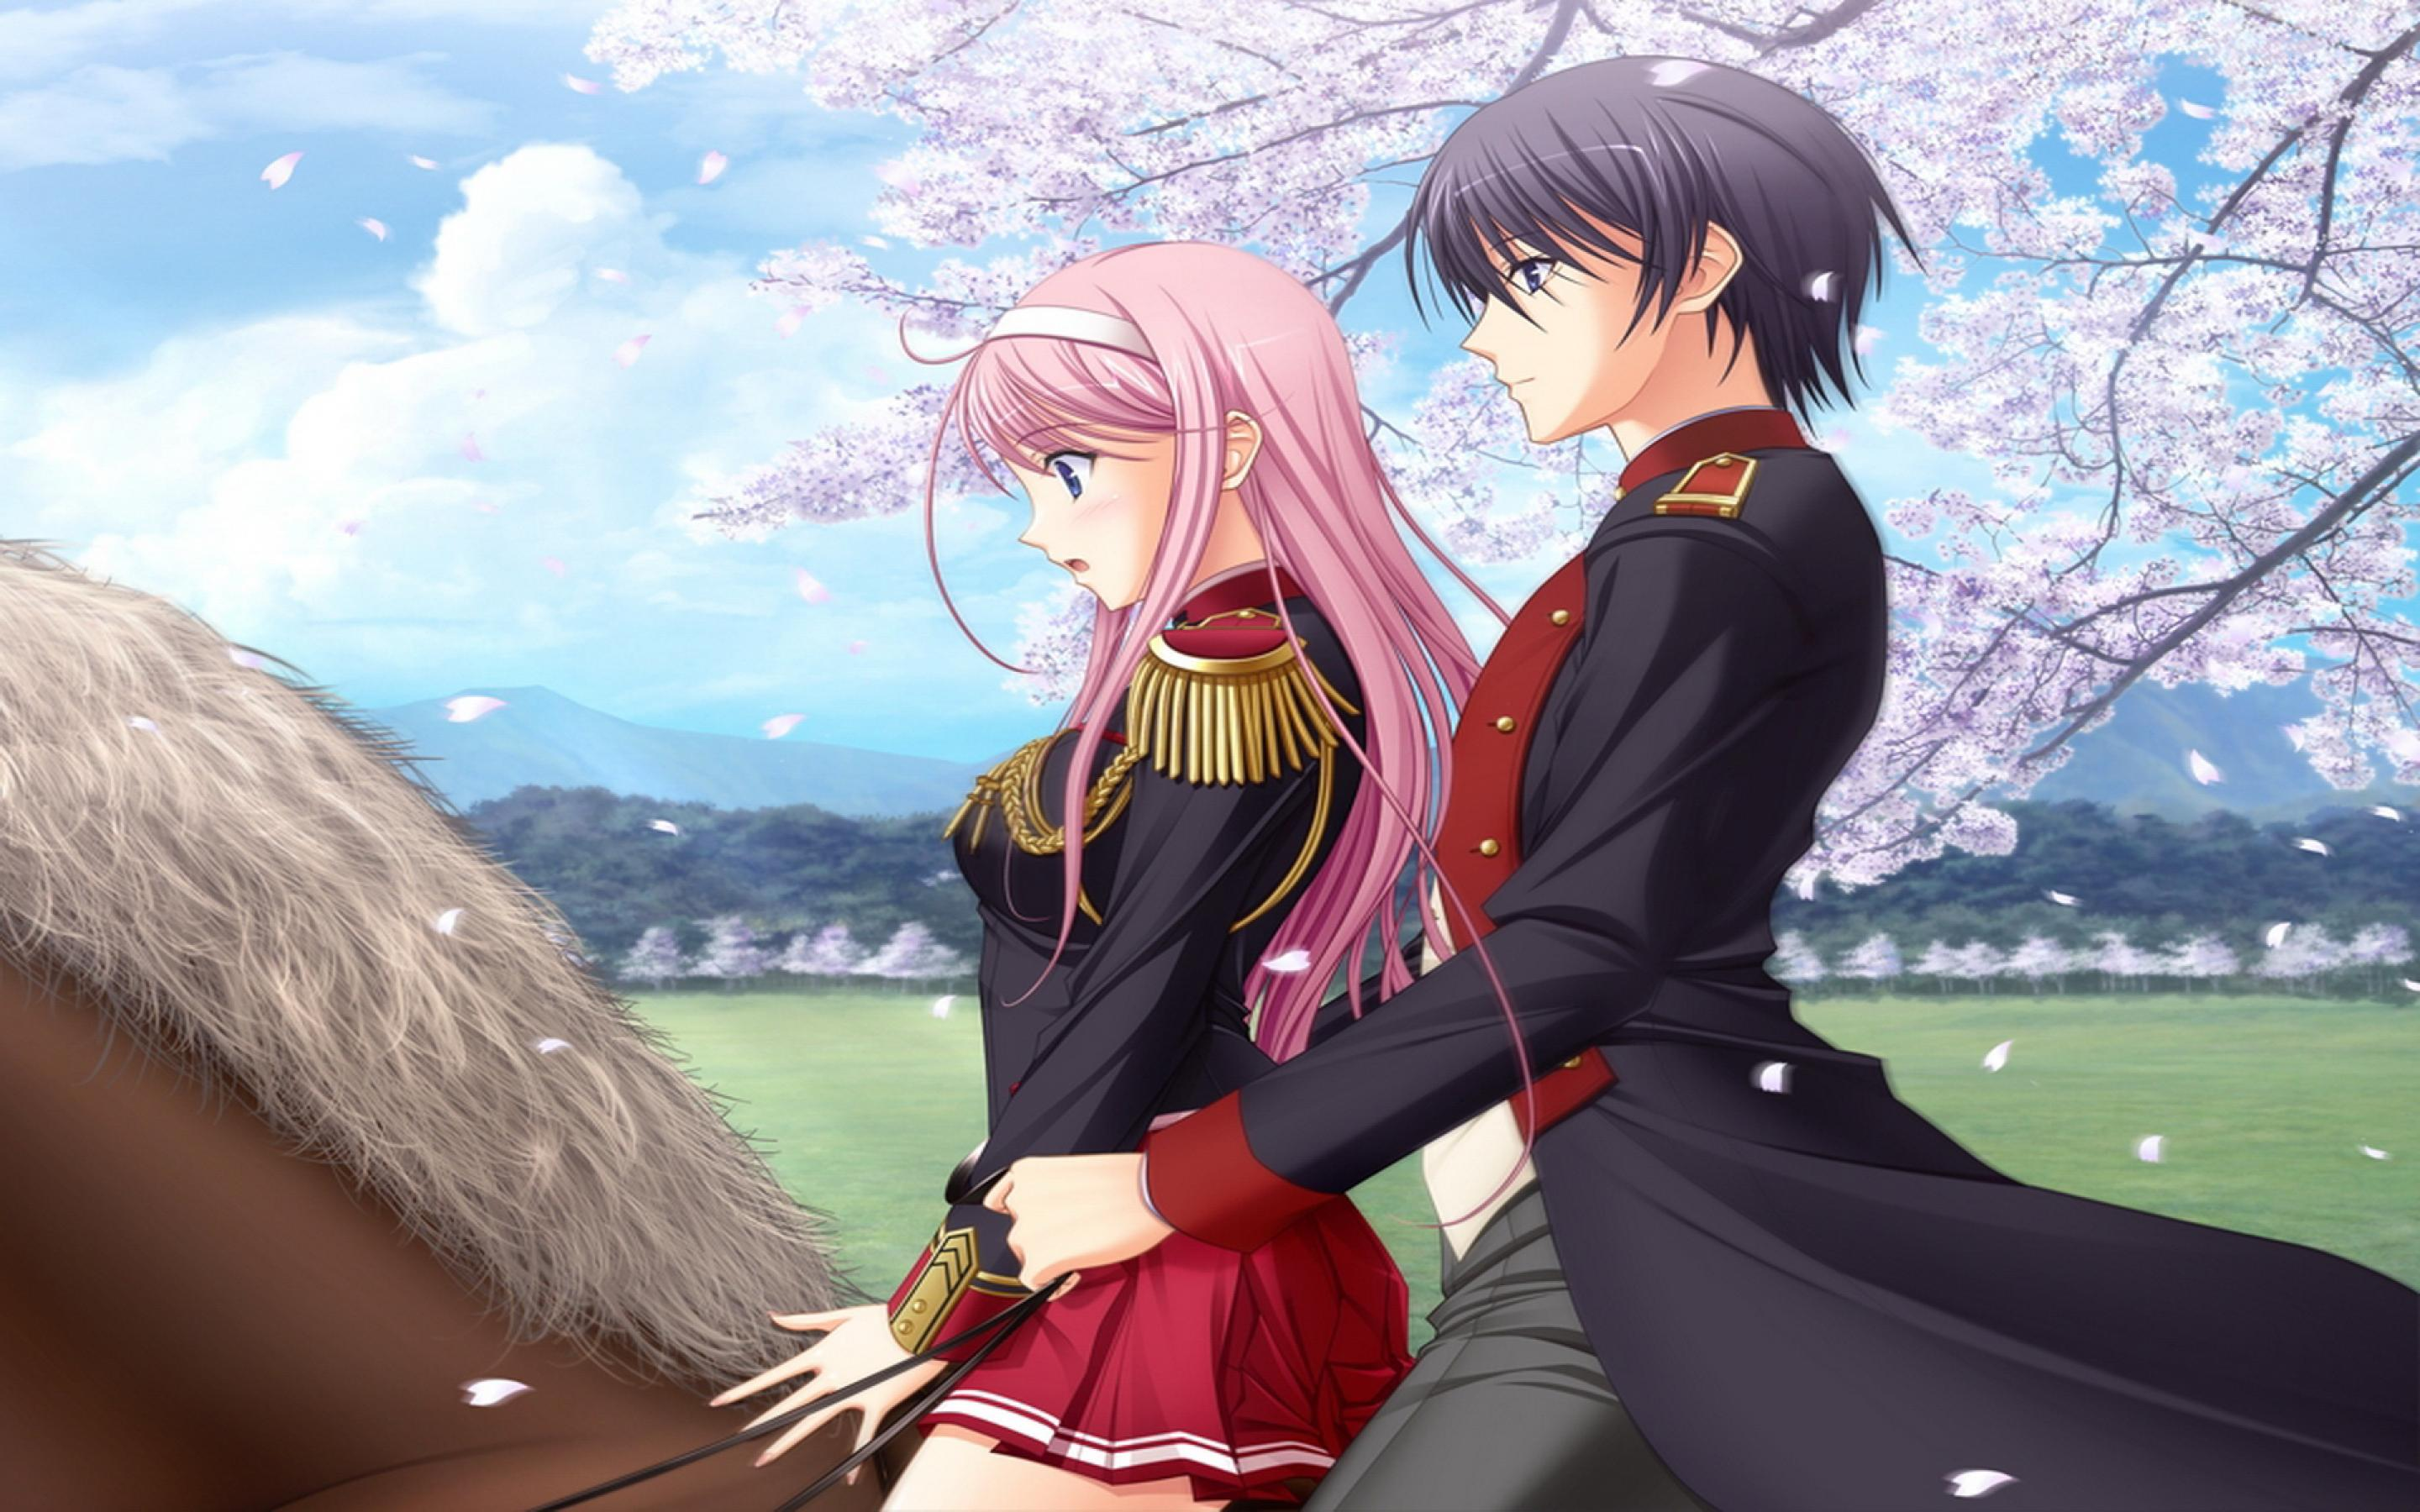 Cartoon Cute Couple Wallpaper An Anime Couple On A Brown Horse In A Spring Day